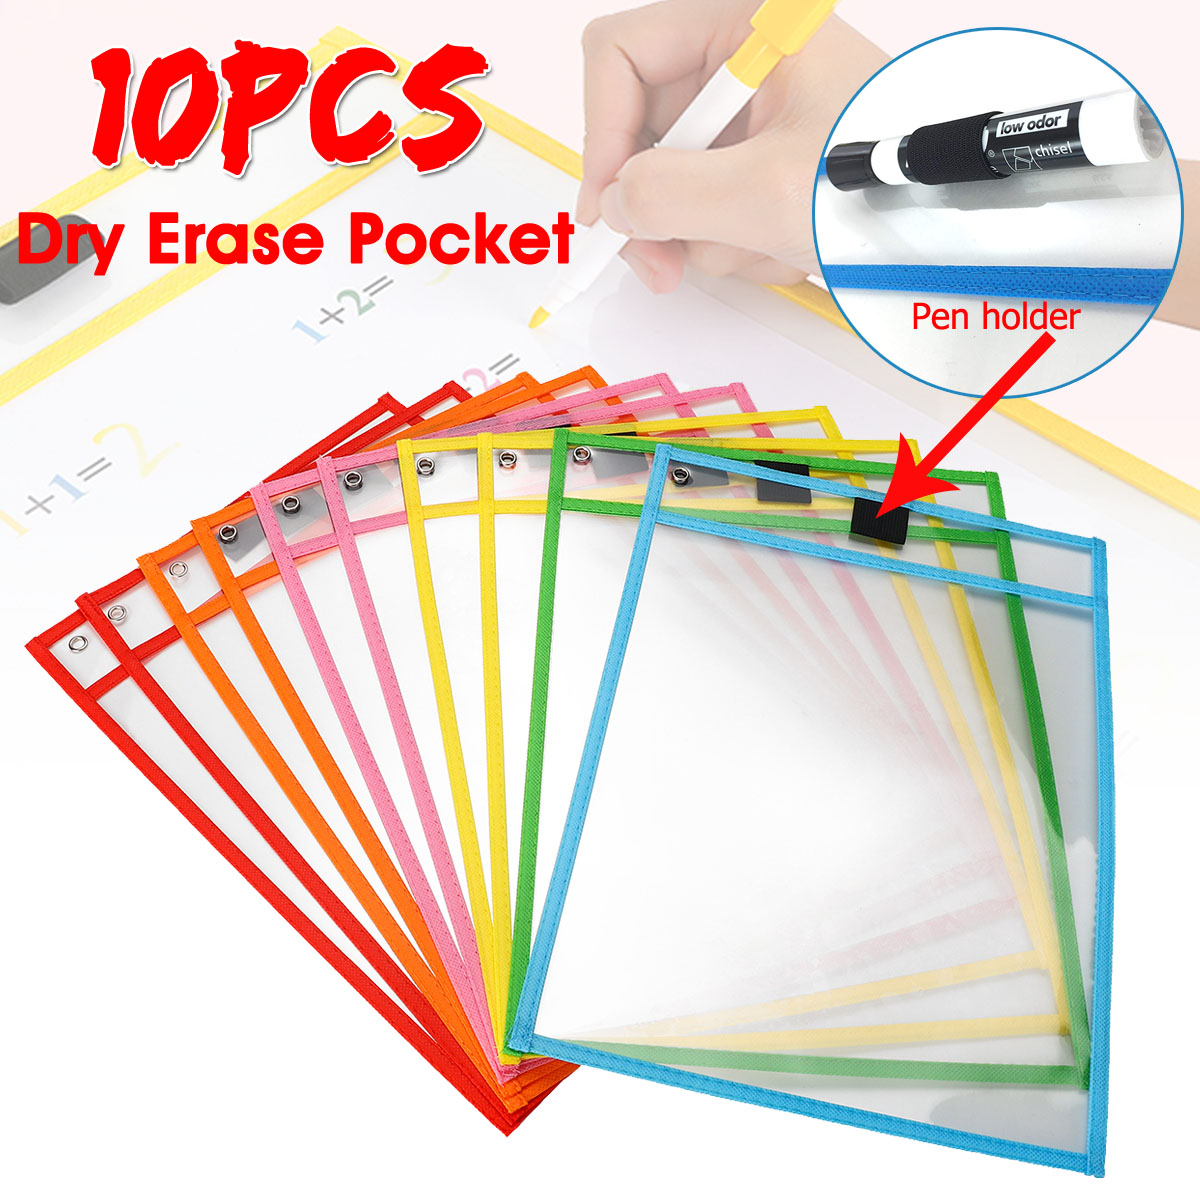 10Pcs Write And Wipe Reusable  Pocket Classroom Organization Environmental Protection Students Kids Tools School Kits